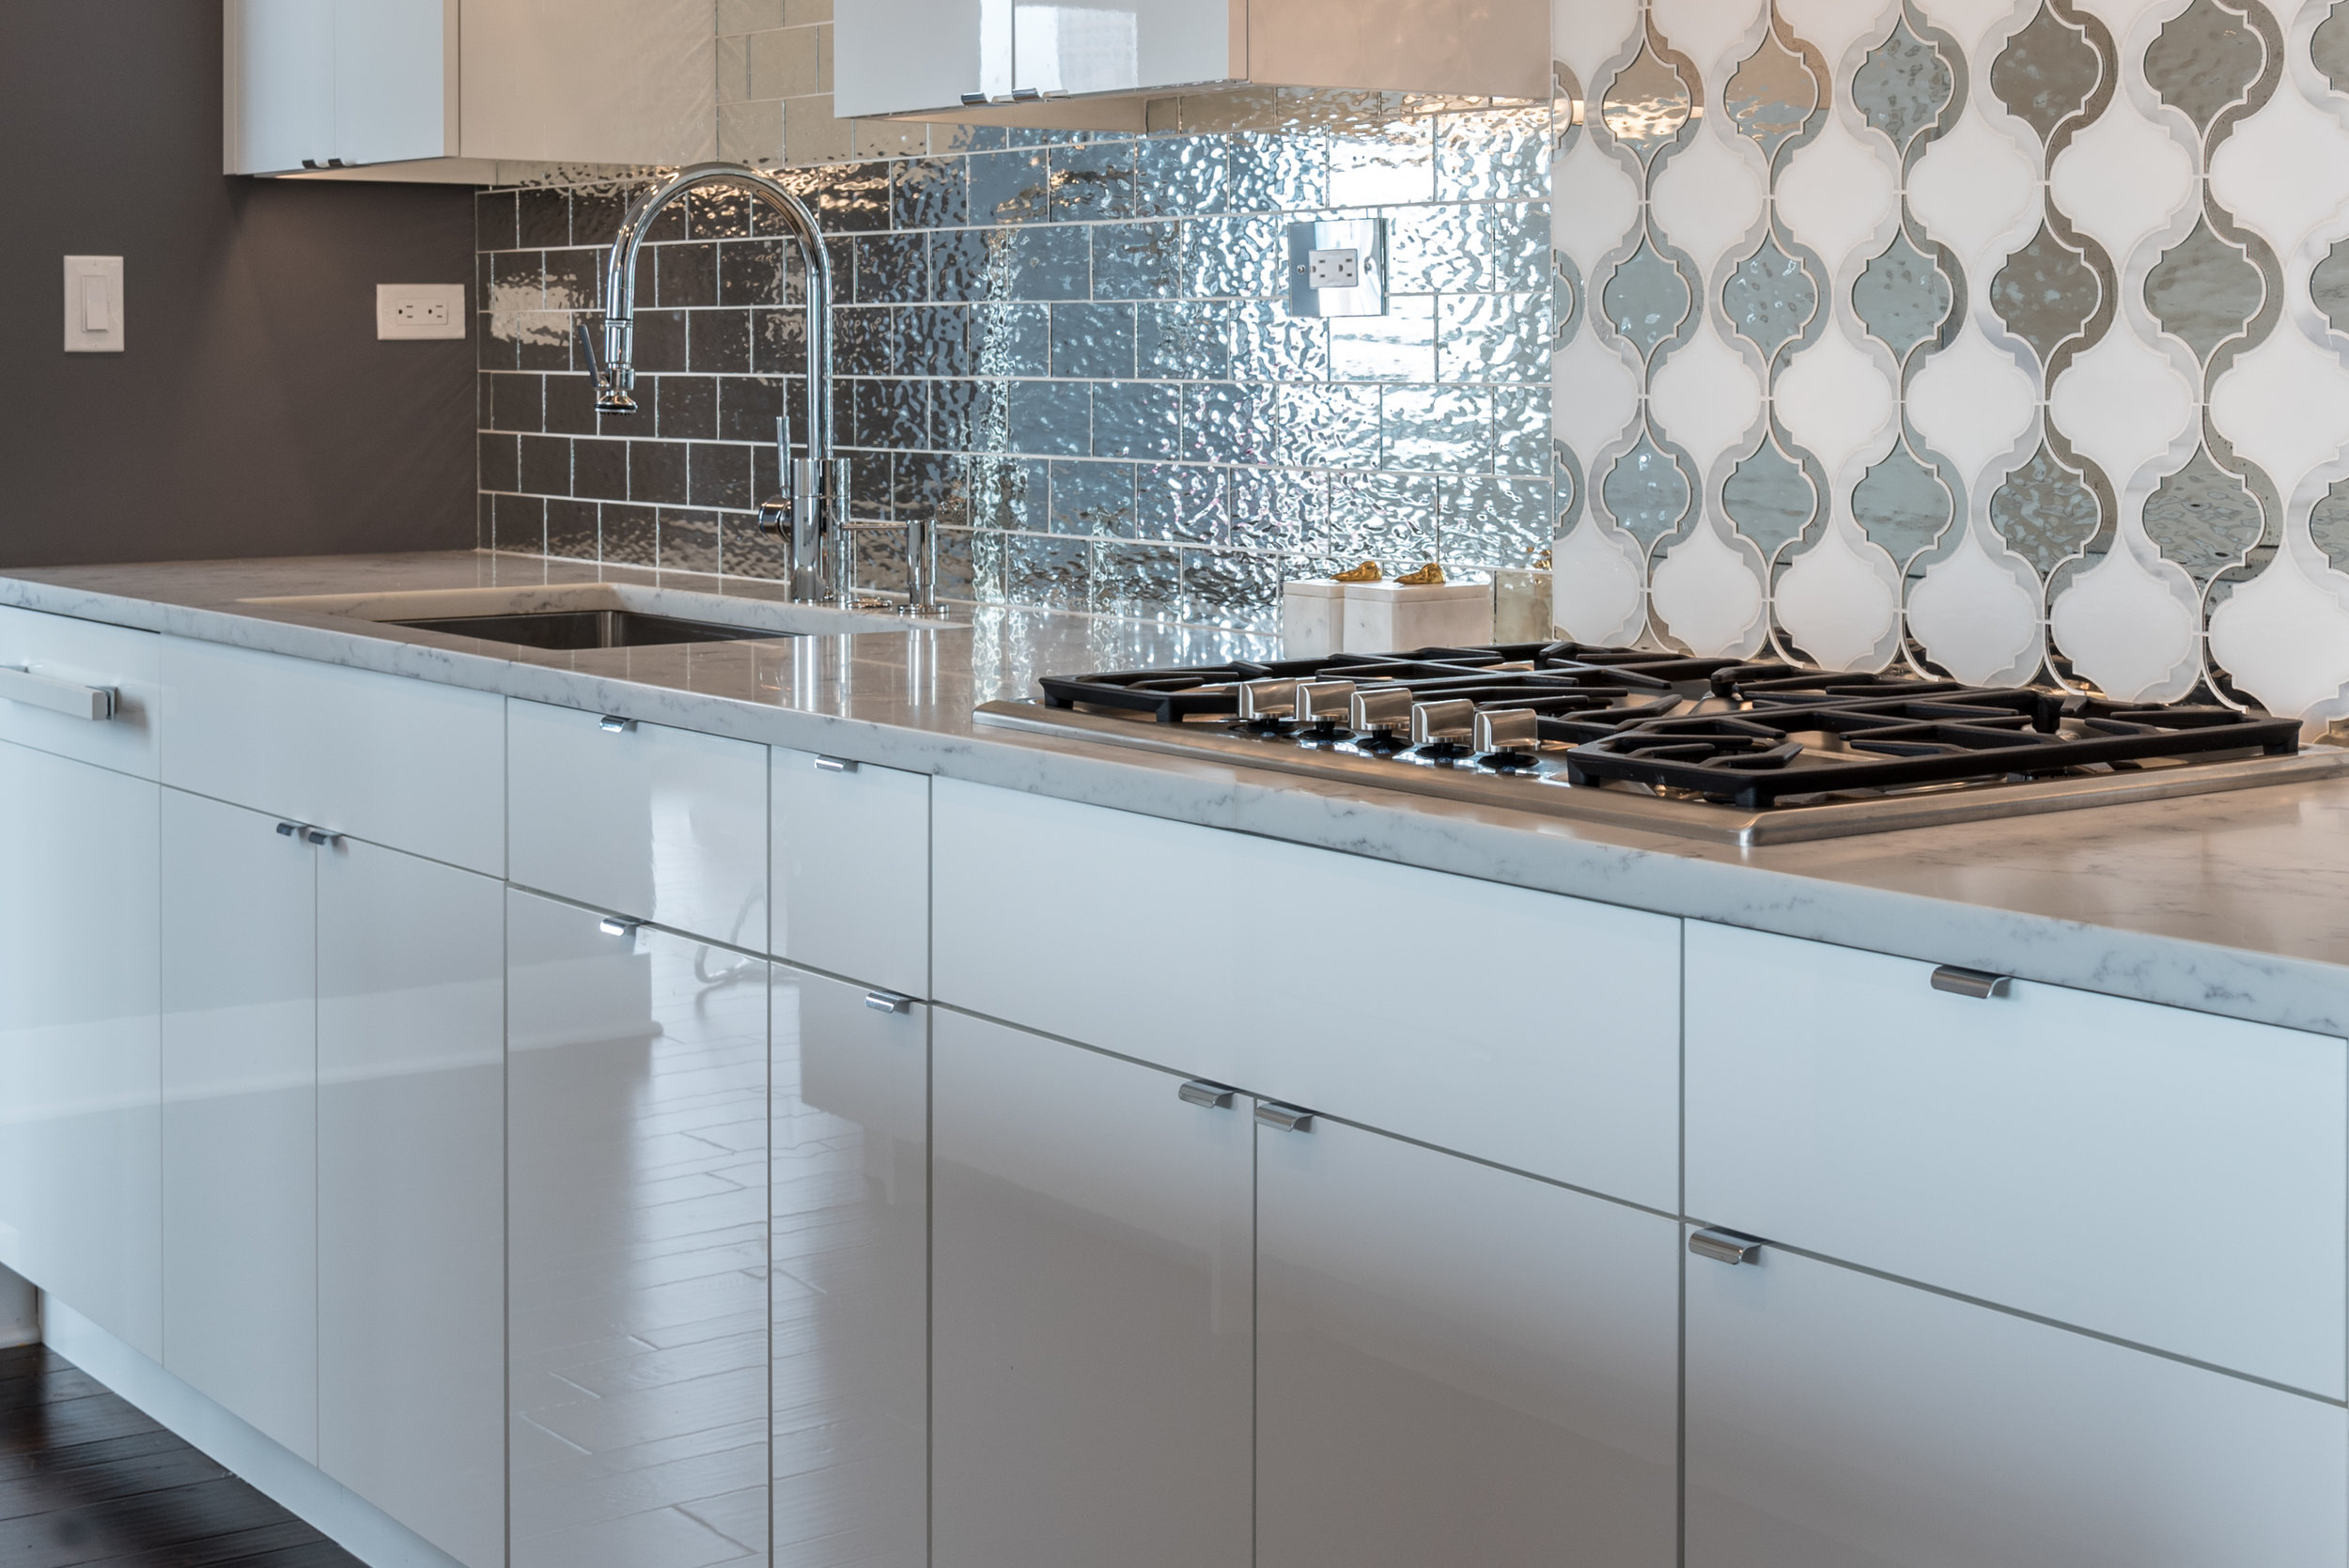 Contemporary Kitchen and bath renovation in Boston. South End.